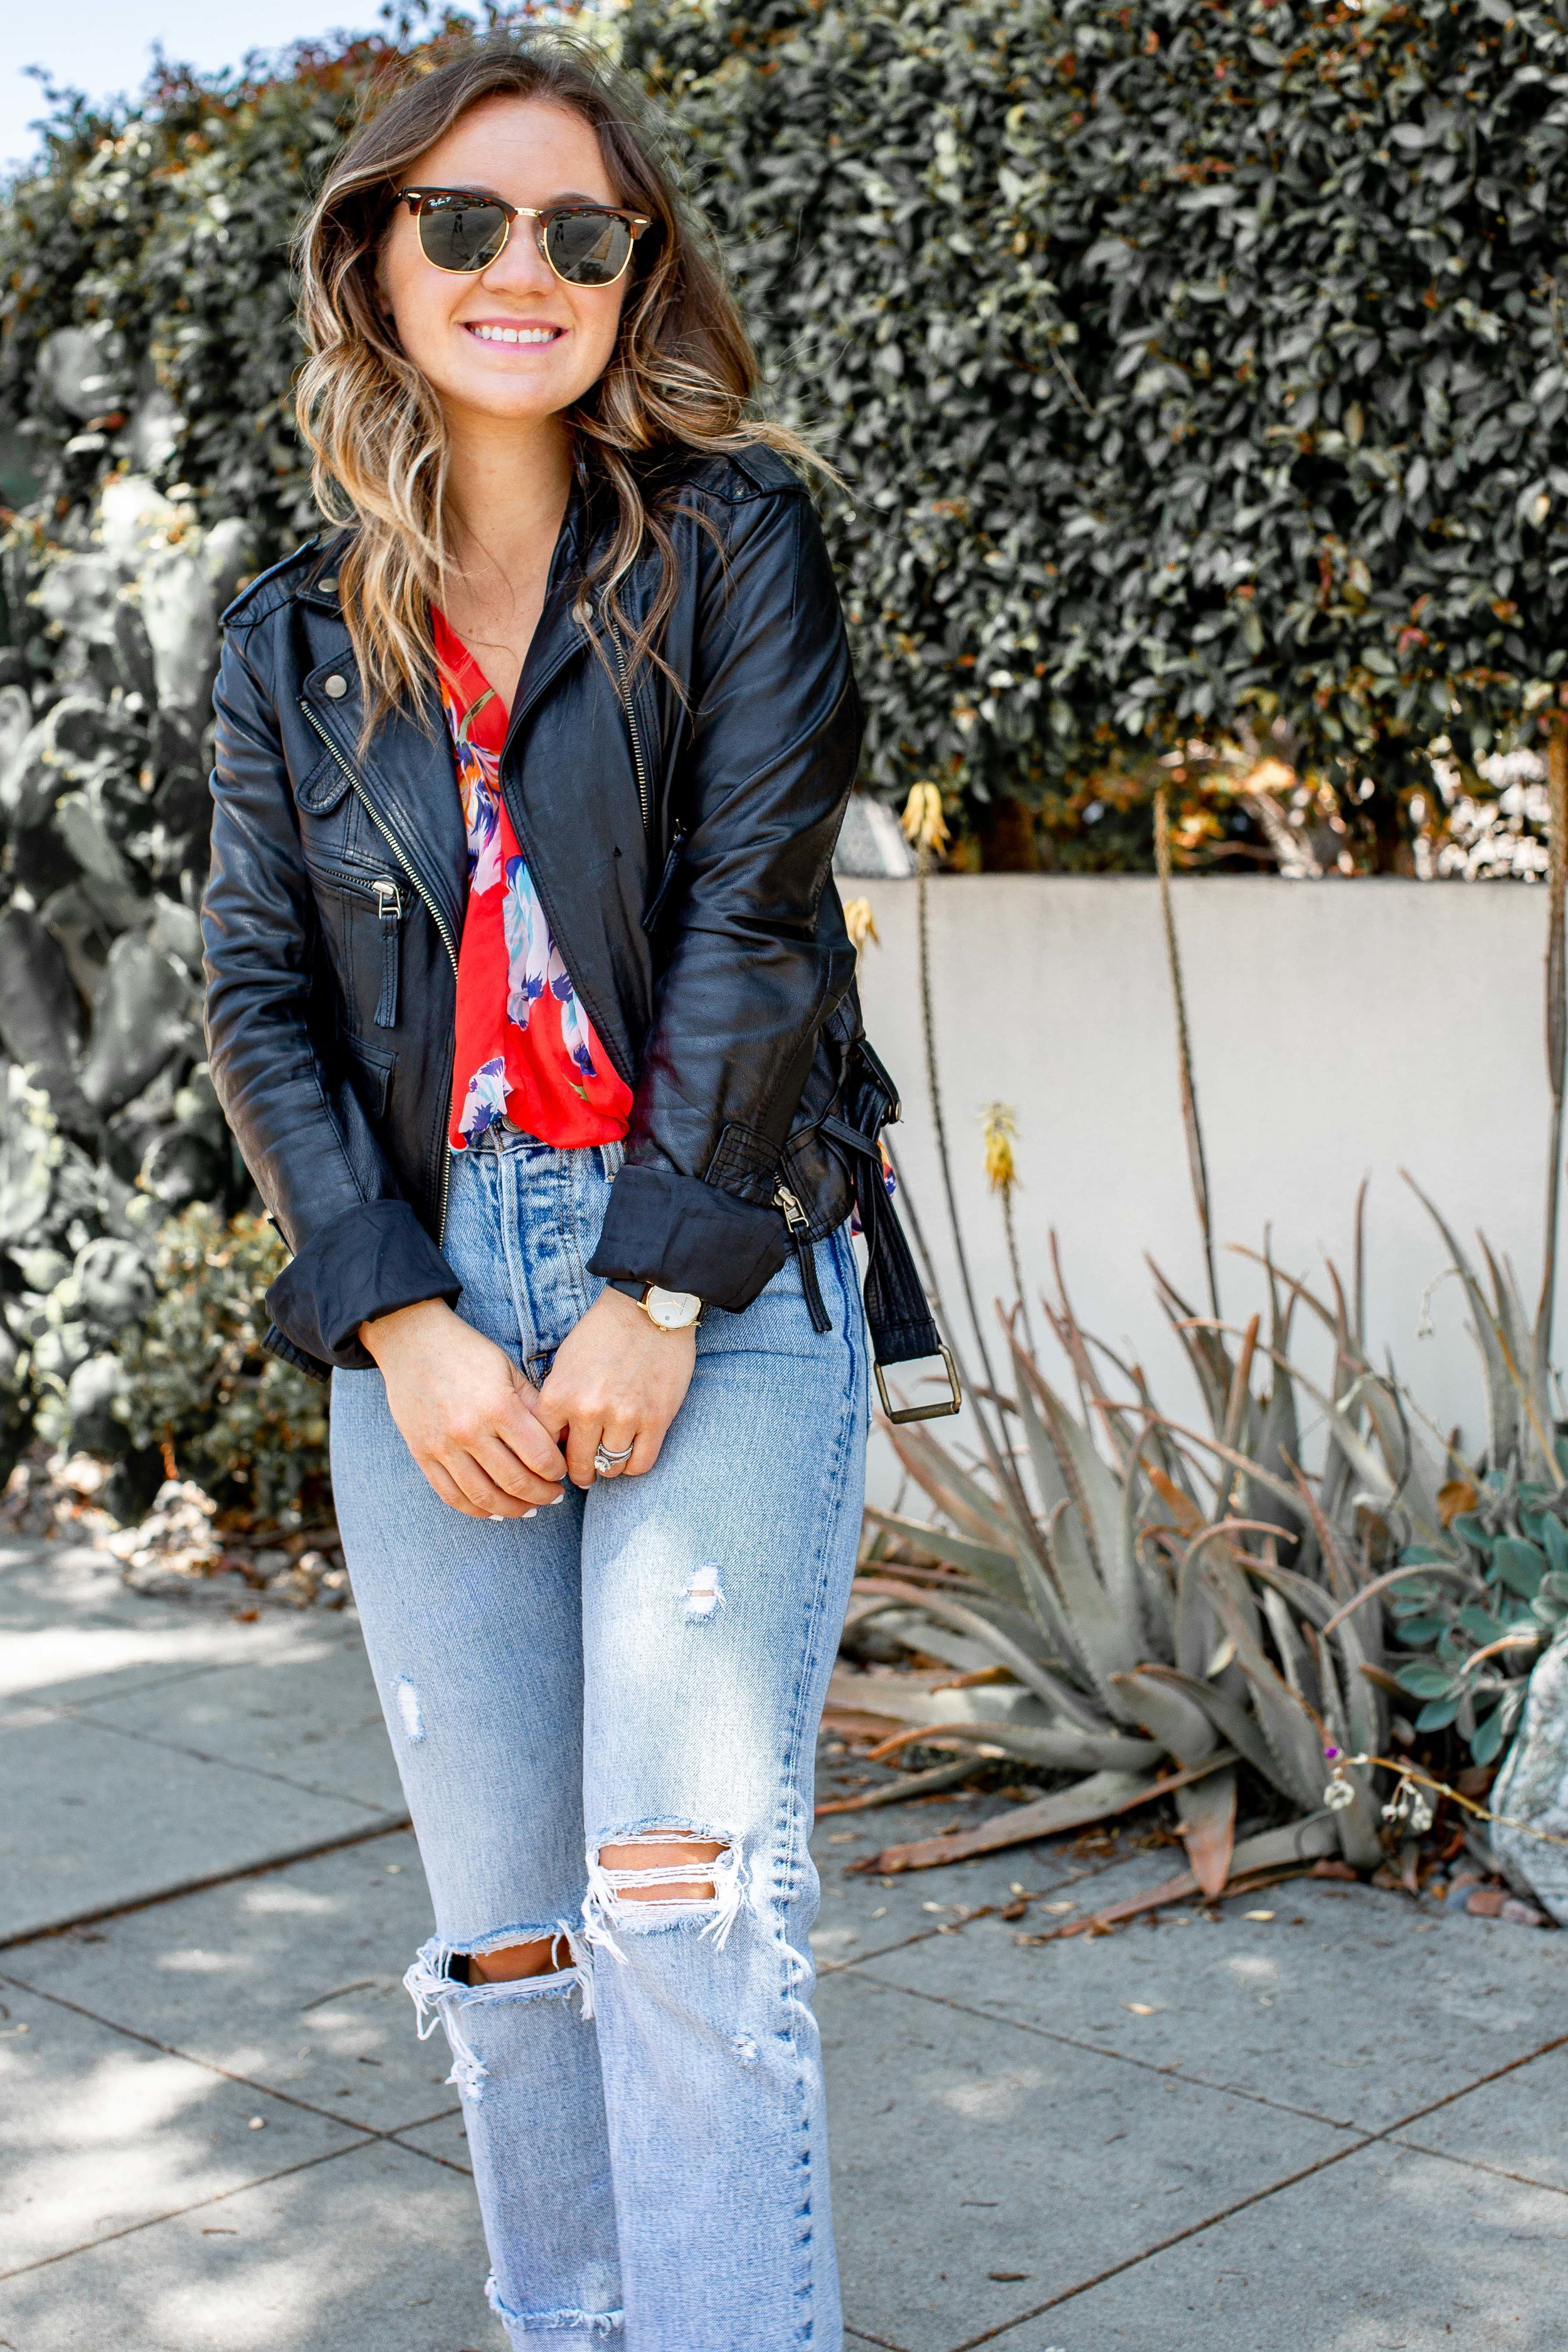 fizz-fade-red-top-levis-leather-8.jpg